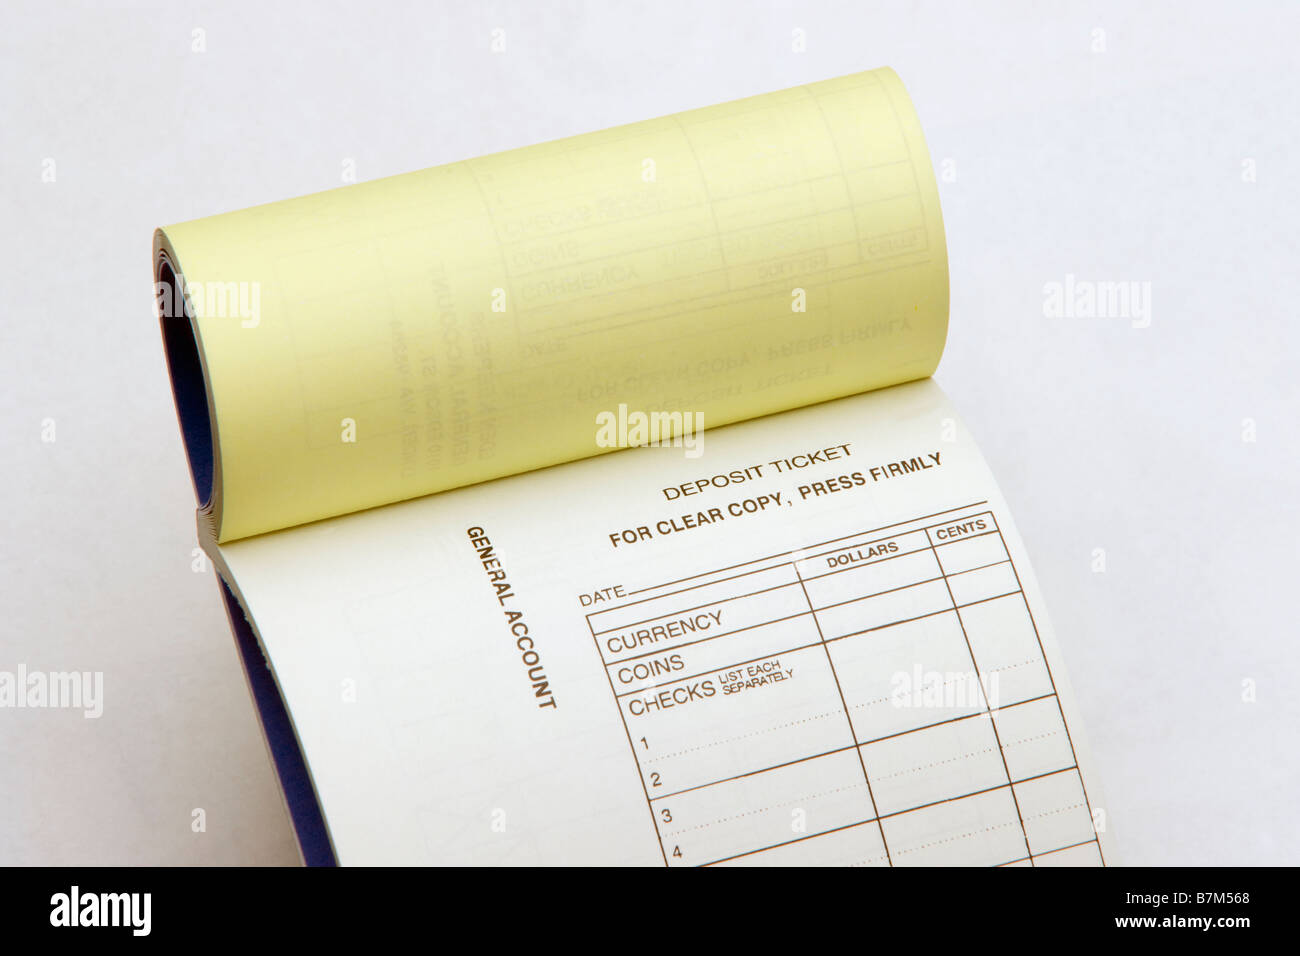 business deposit book Stock Photo, Royalty Free Image: 21956096 ...